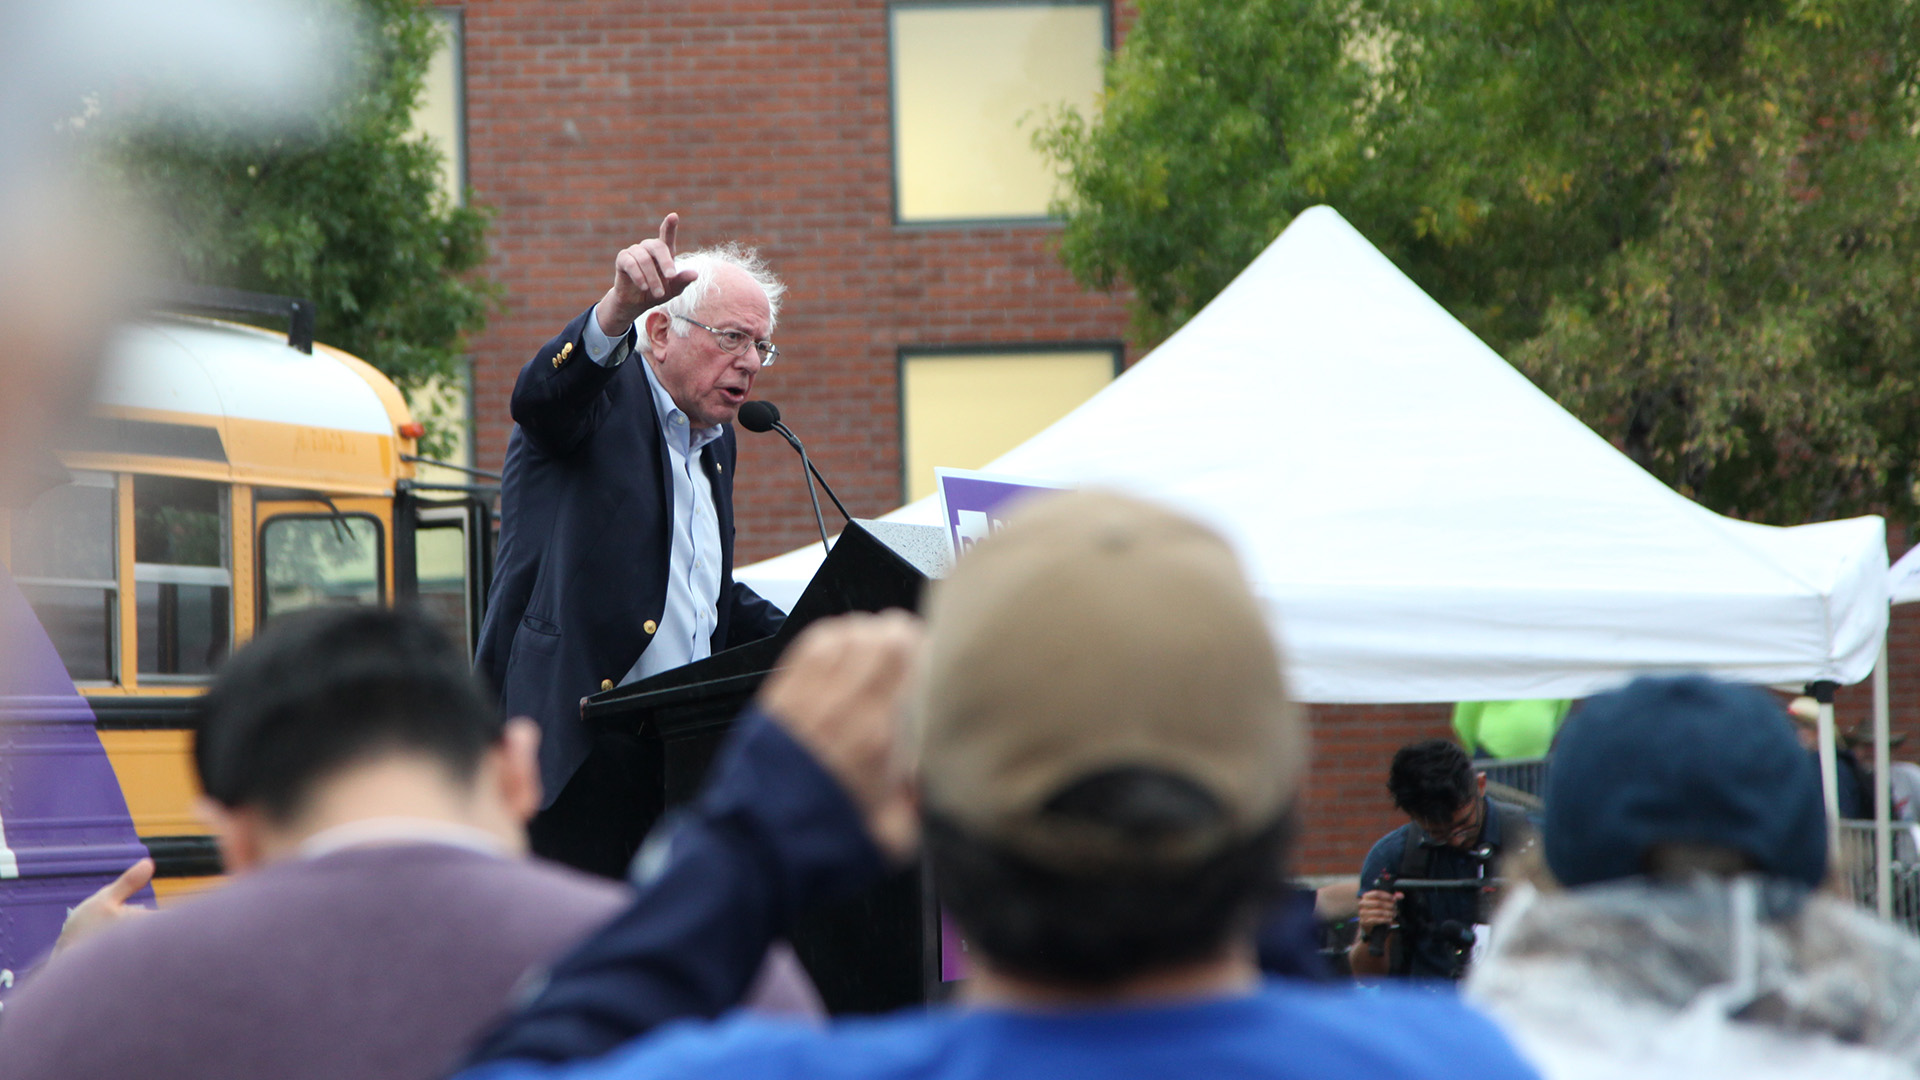 U.S. Sen. Bernie Sanders rallies people on the University of Arizona campus as he campaigns for Democratic candidate for governor, David Garcia, Oct. 23, 2018.